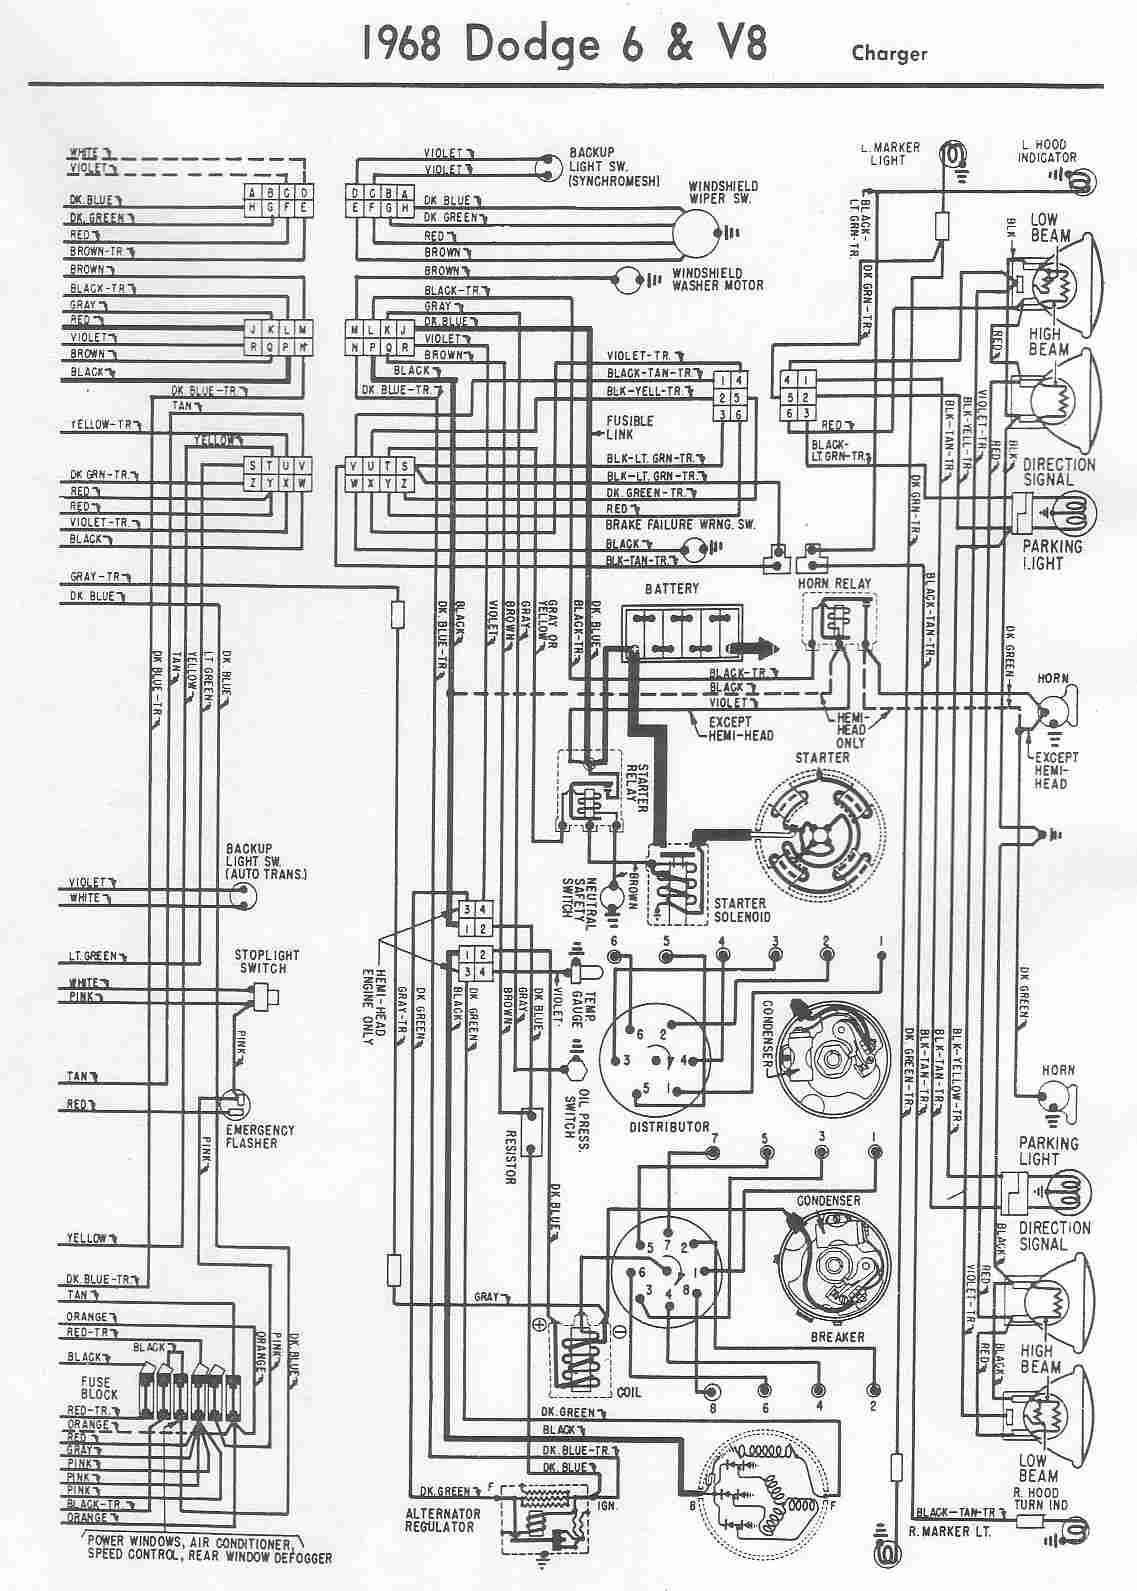 1969 road runner wiring diagram schematic 1 11 sandybloom nl \u2022dodge wiring diagrams free best part of wiring diagram rh j12 aluminiumsolutions co electrical wiring schematic symbols schematic circuit diagram